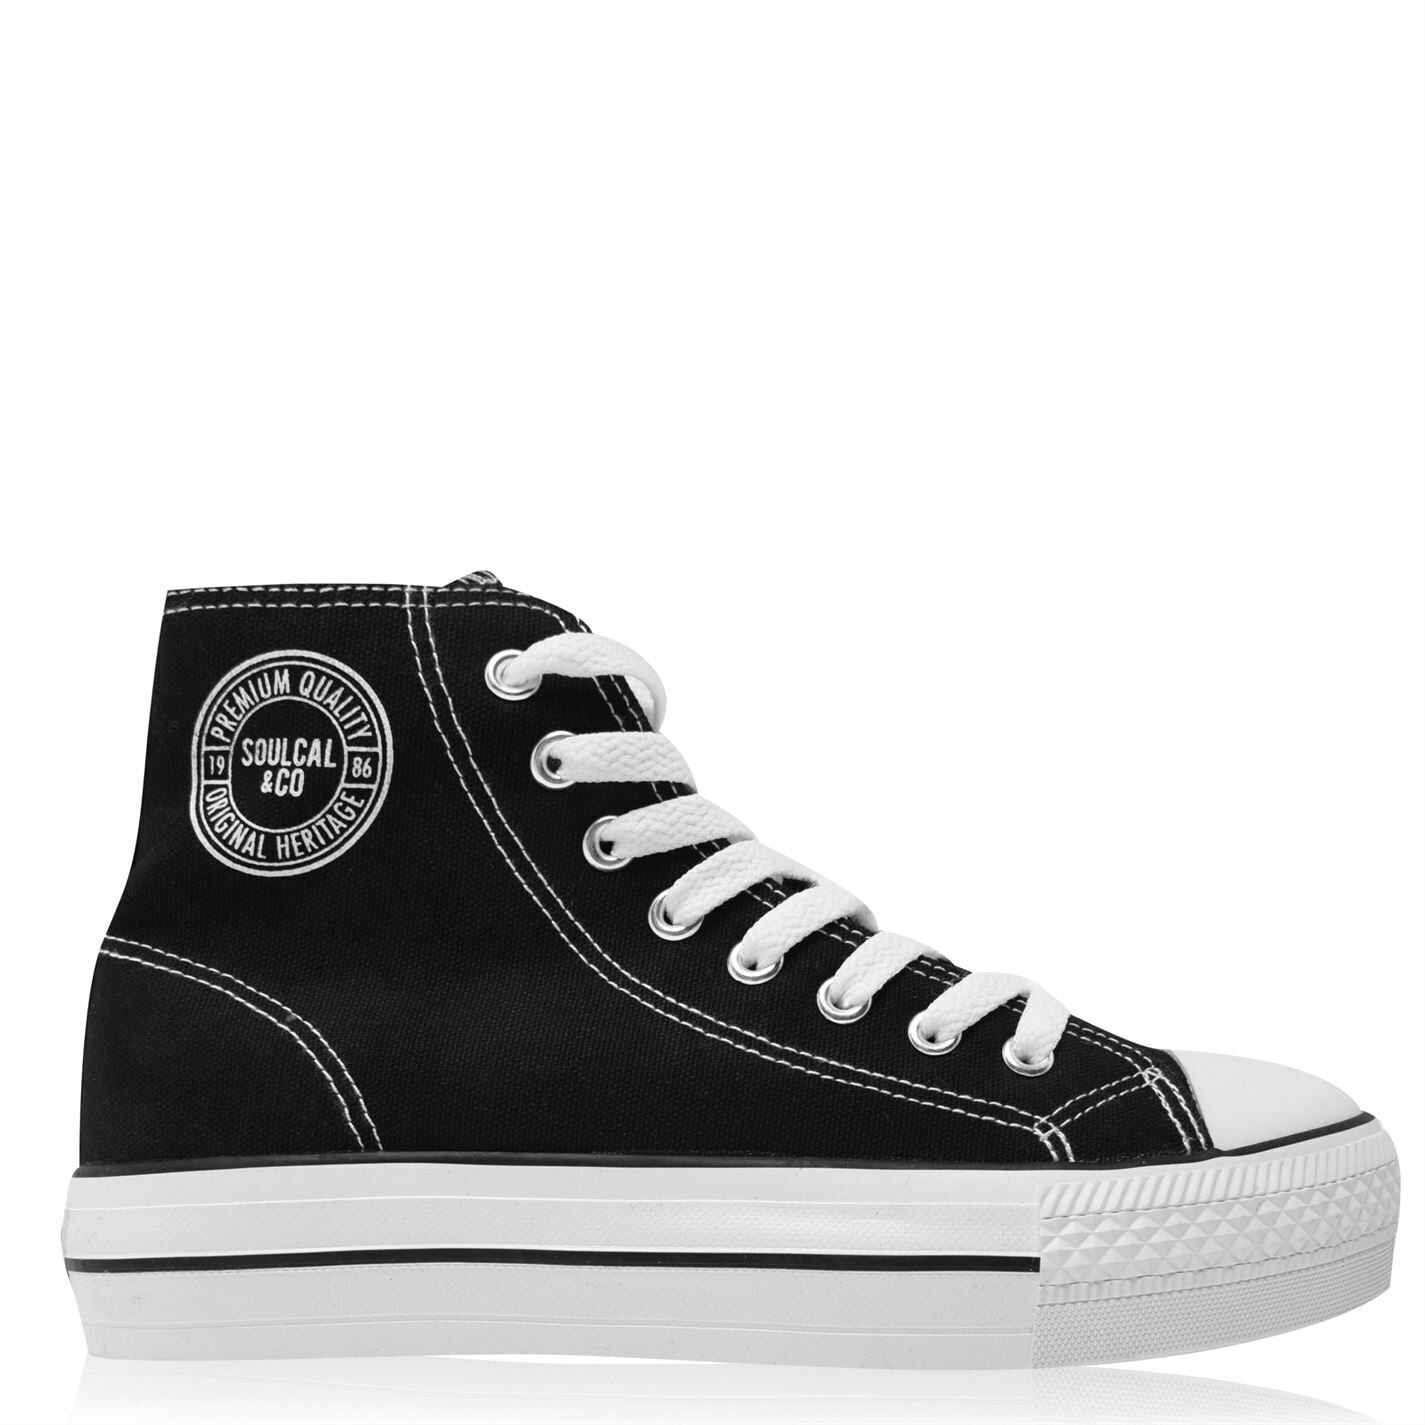 Womens SoulCal Canvas High Top Trainers Lace Up New